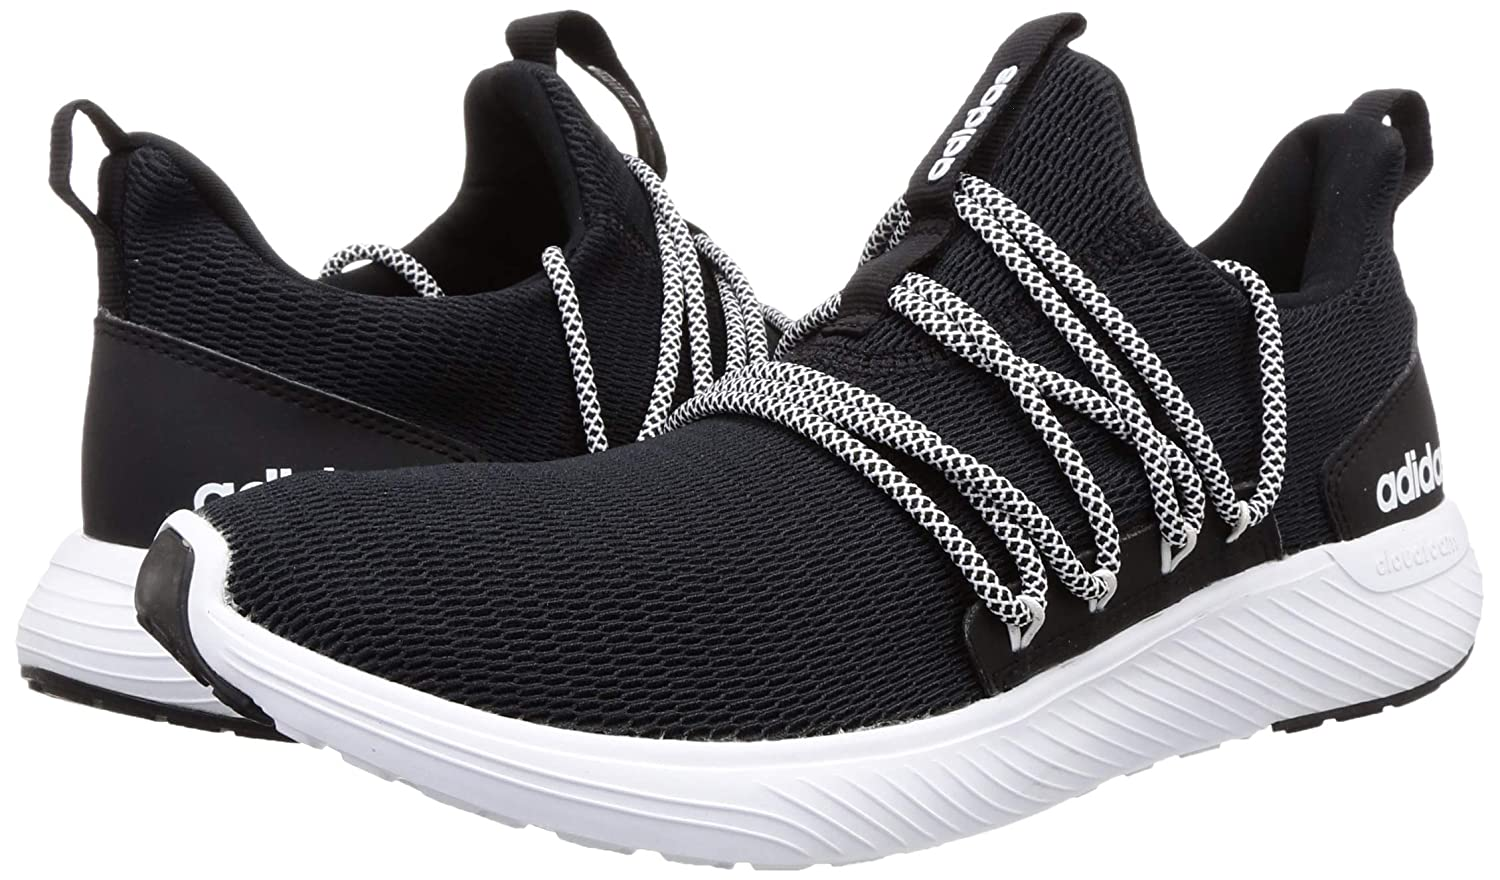 Buy Adidas Men's Laceit M Running Shoes